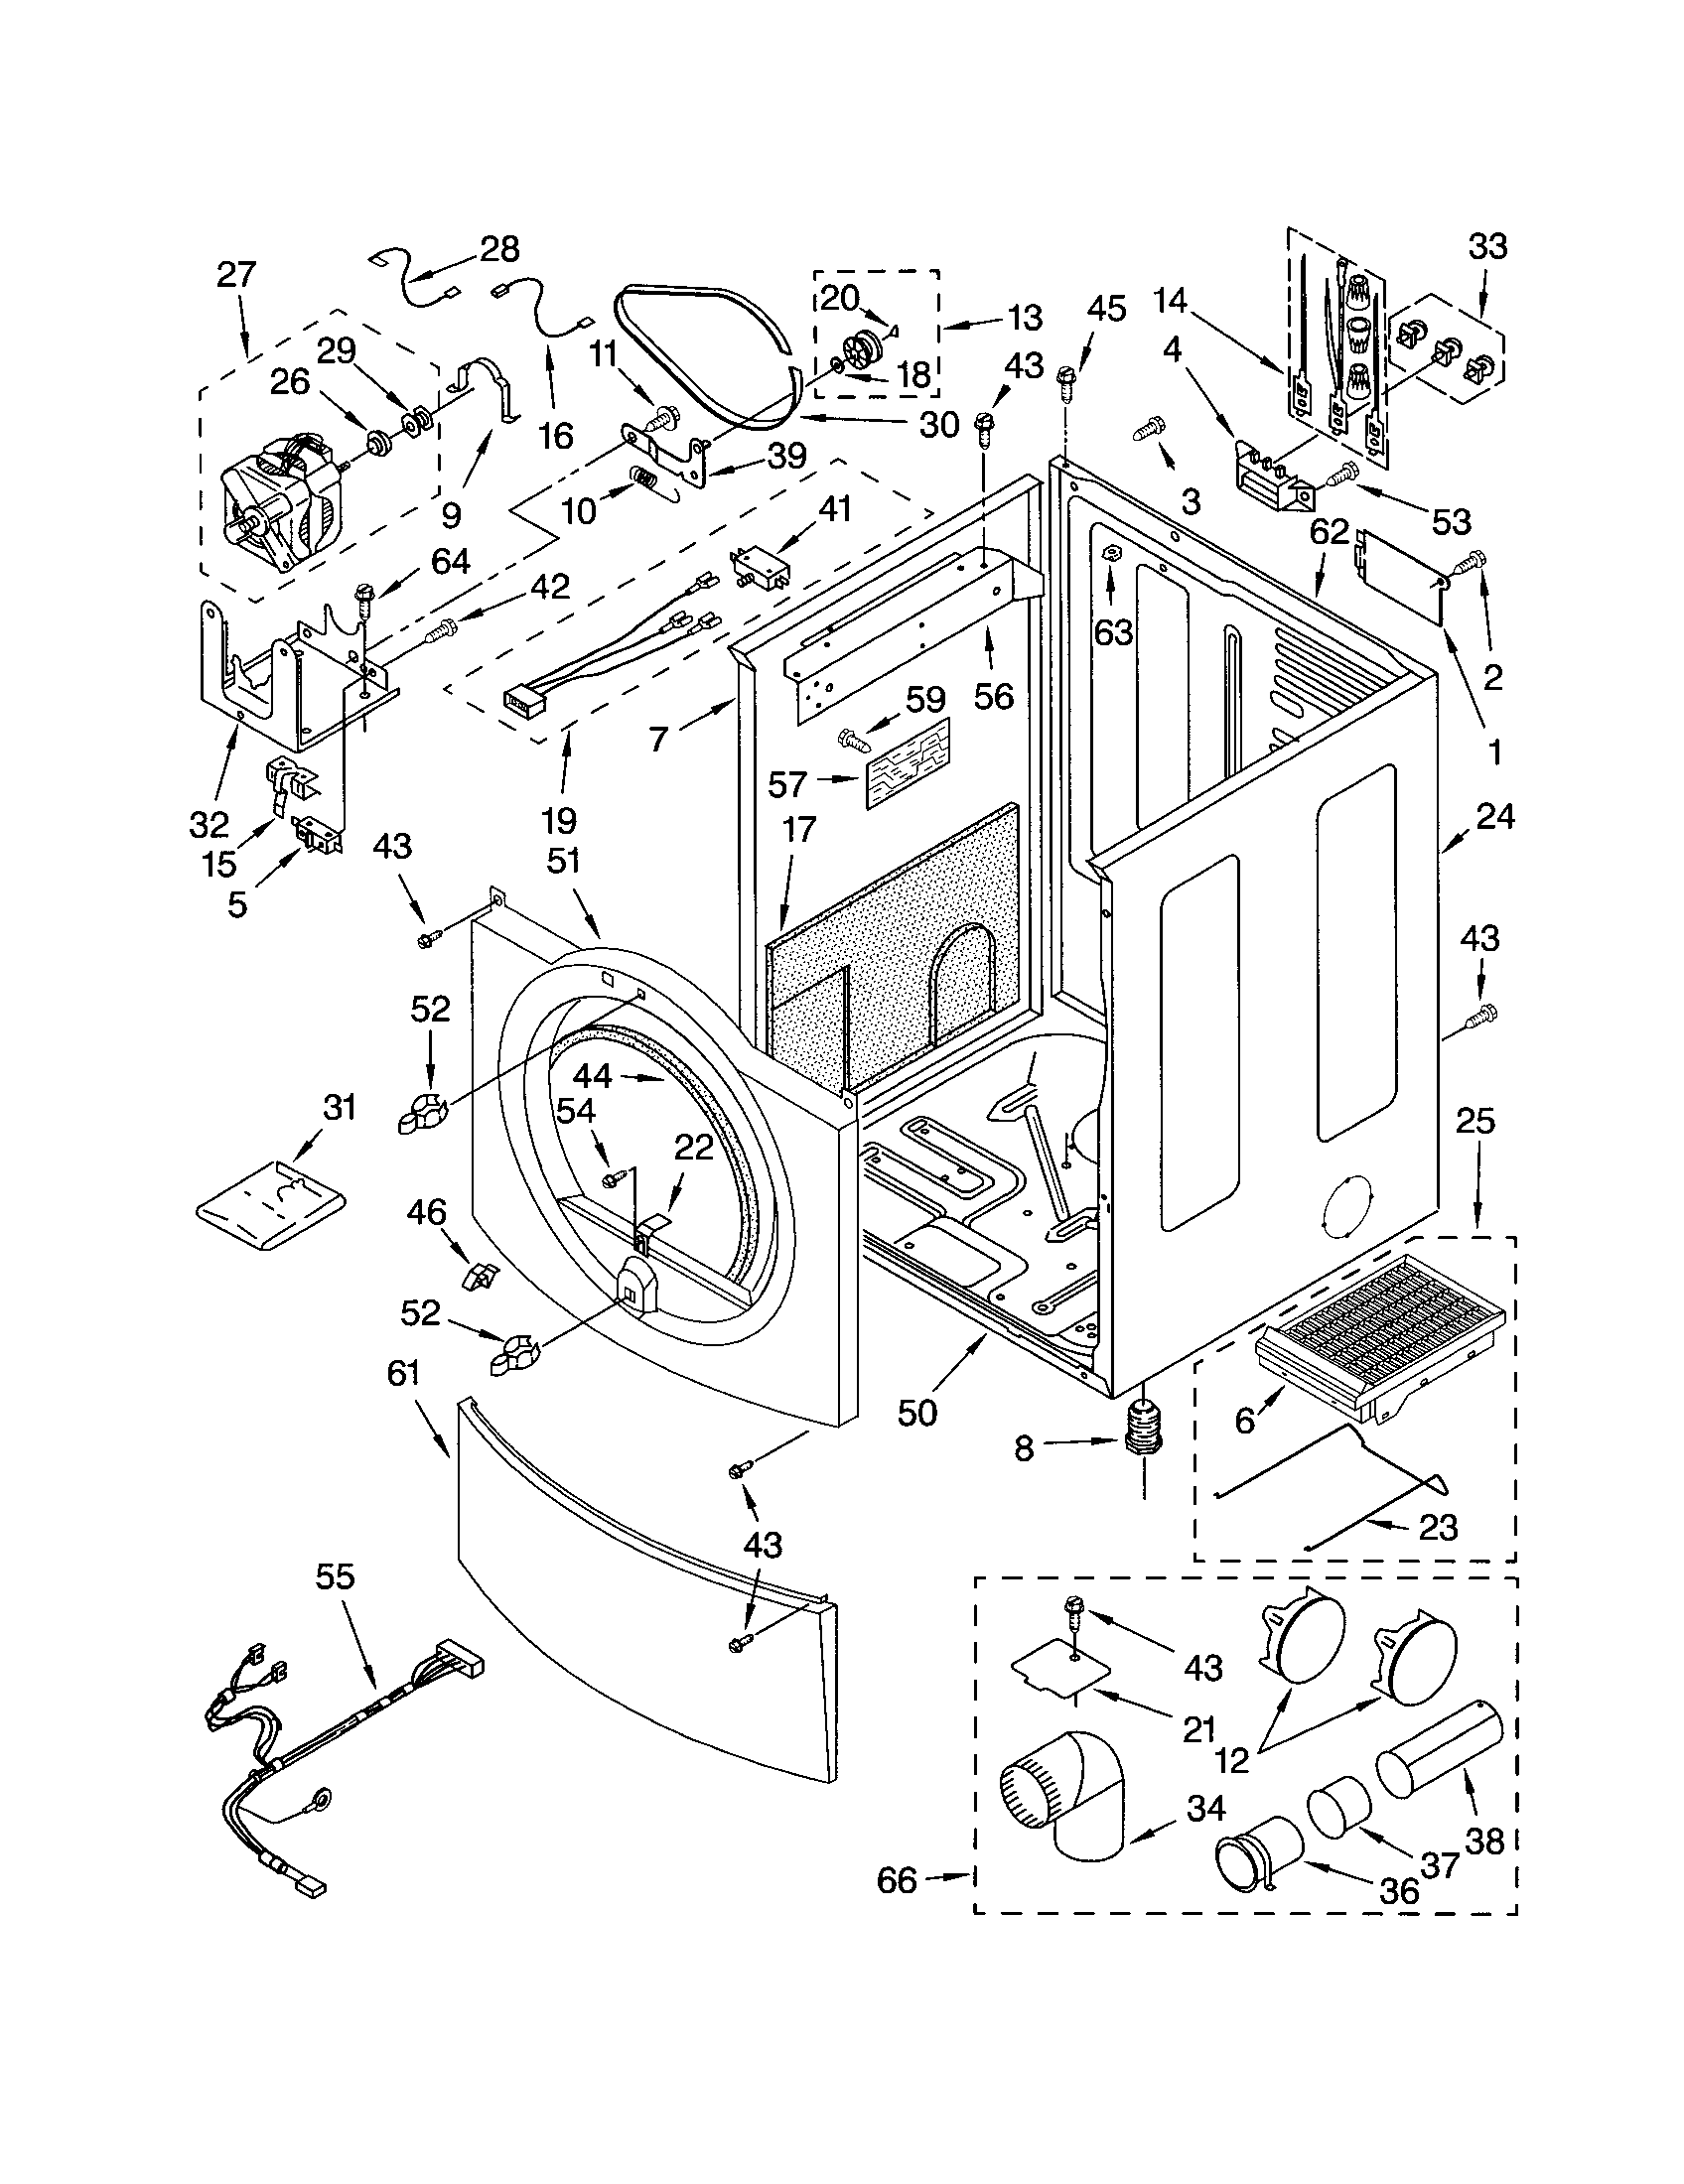 CABINET Diagram & Parts List for Model 11084834200 Kenmore